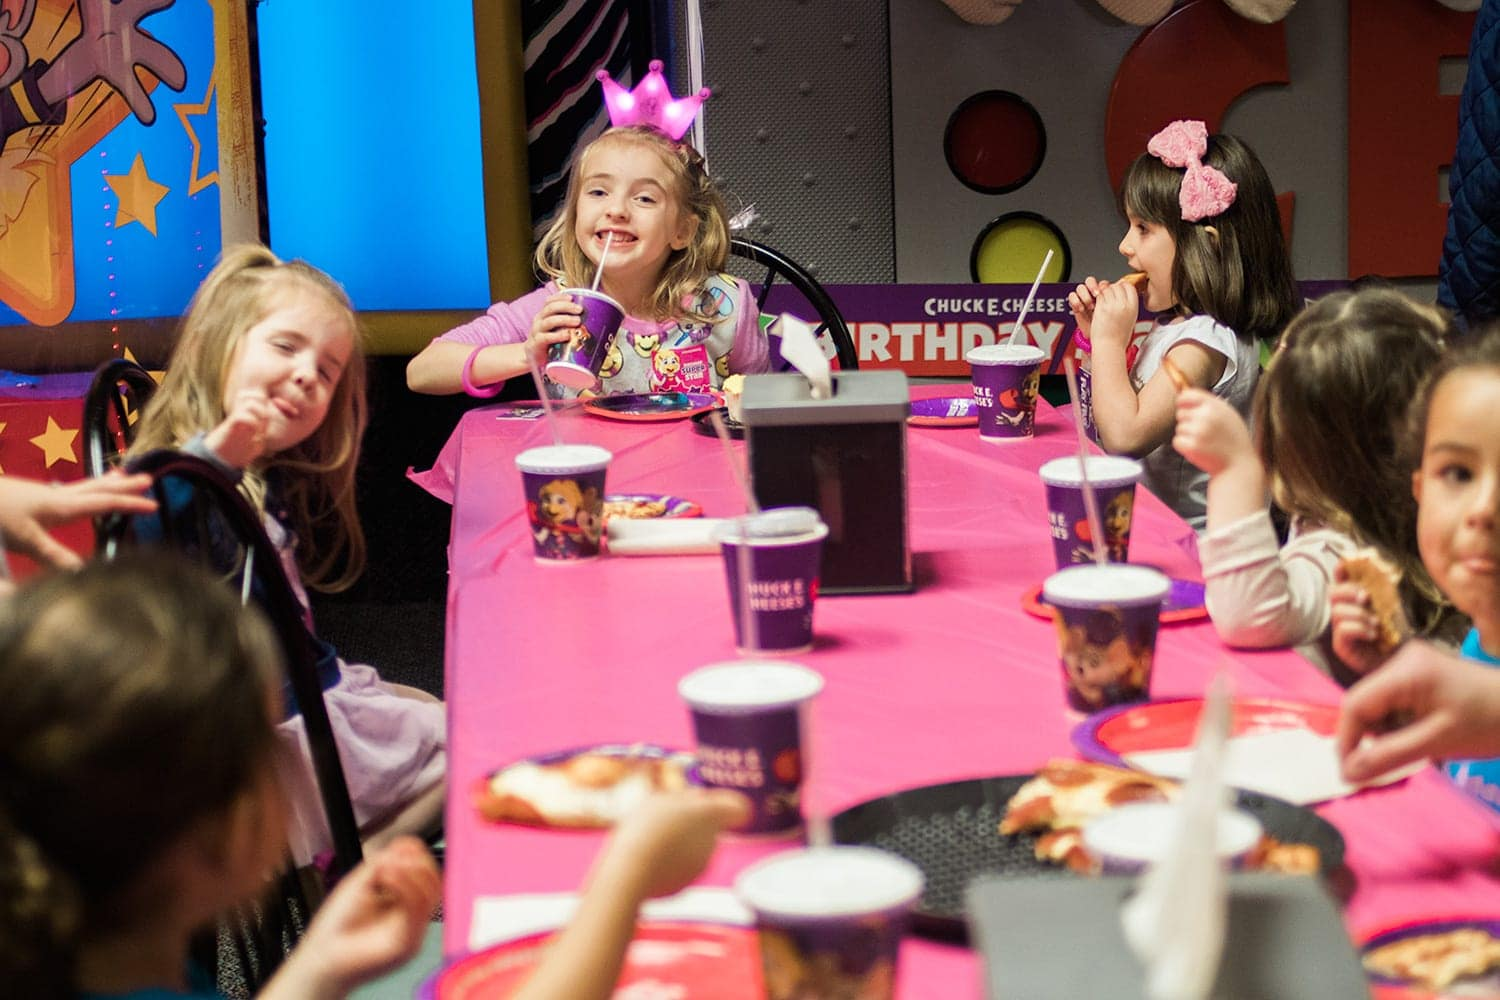 Chuck E. Cheese Birthday Party Table time - photo by Houston Blogger Meg O. on the Go